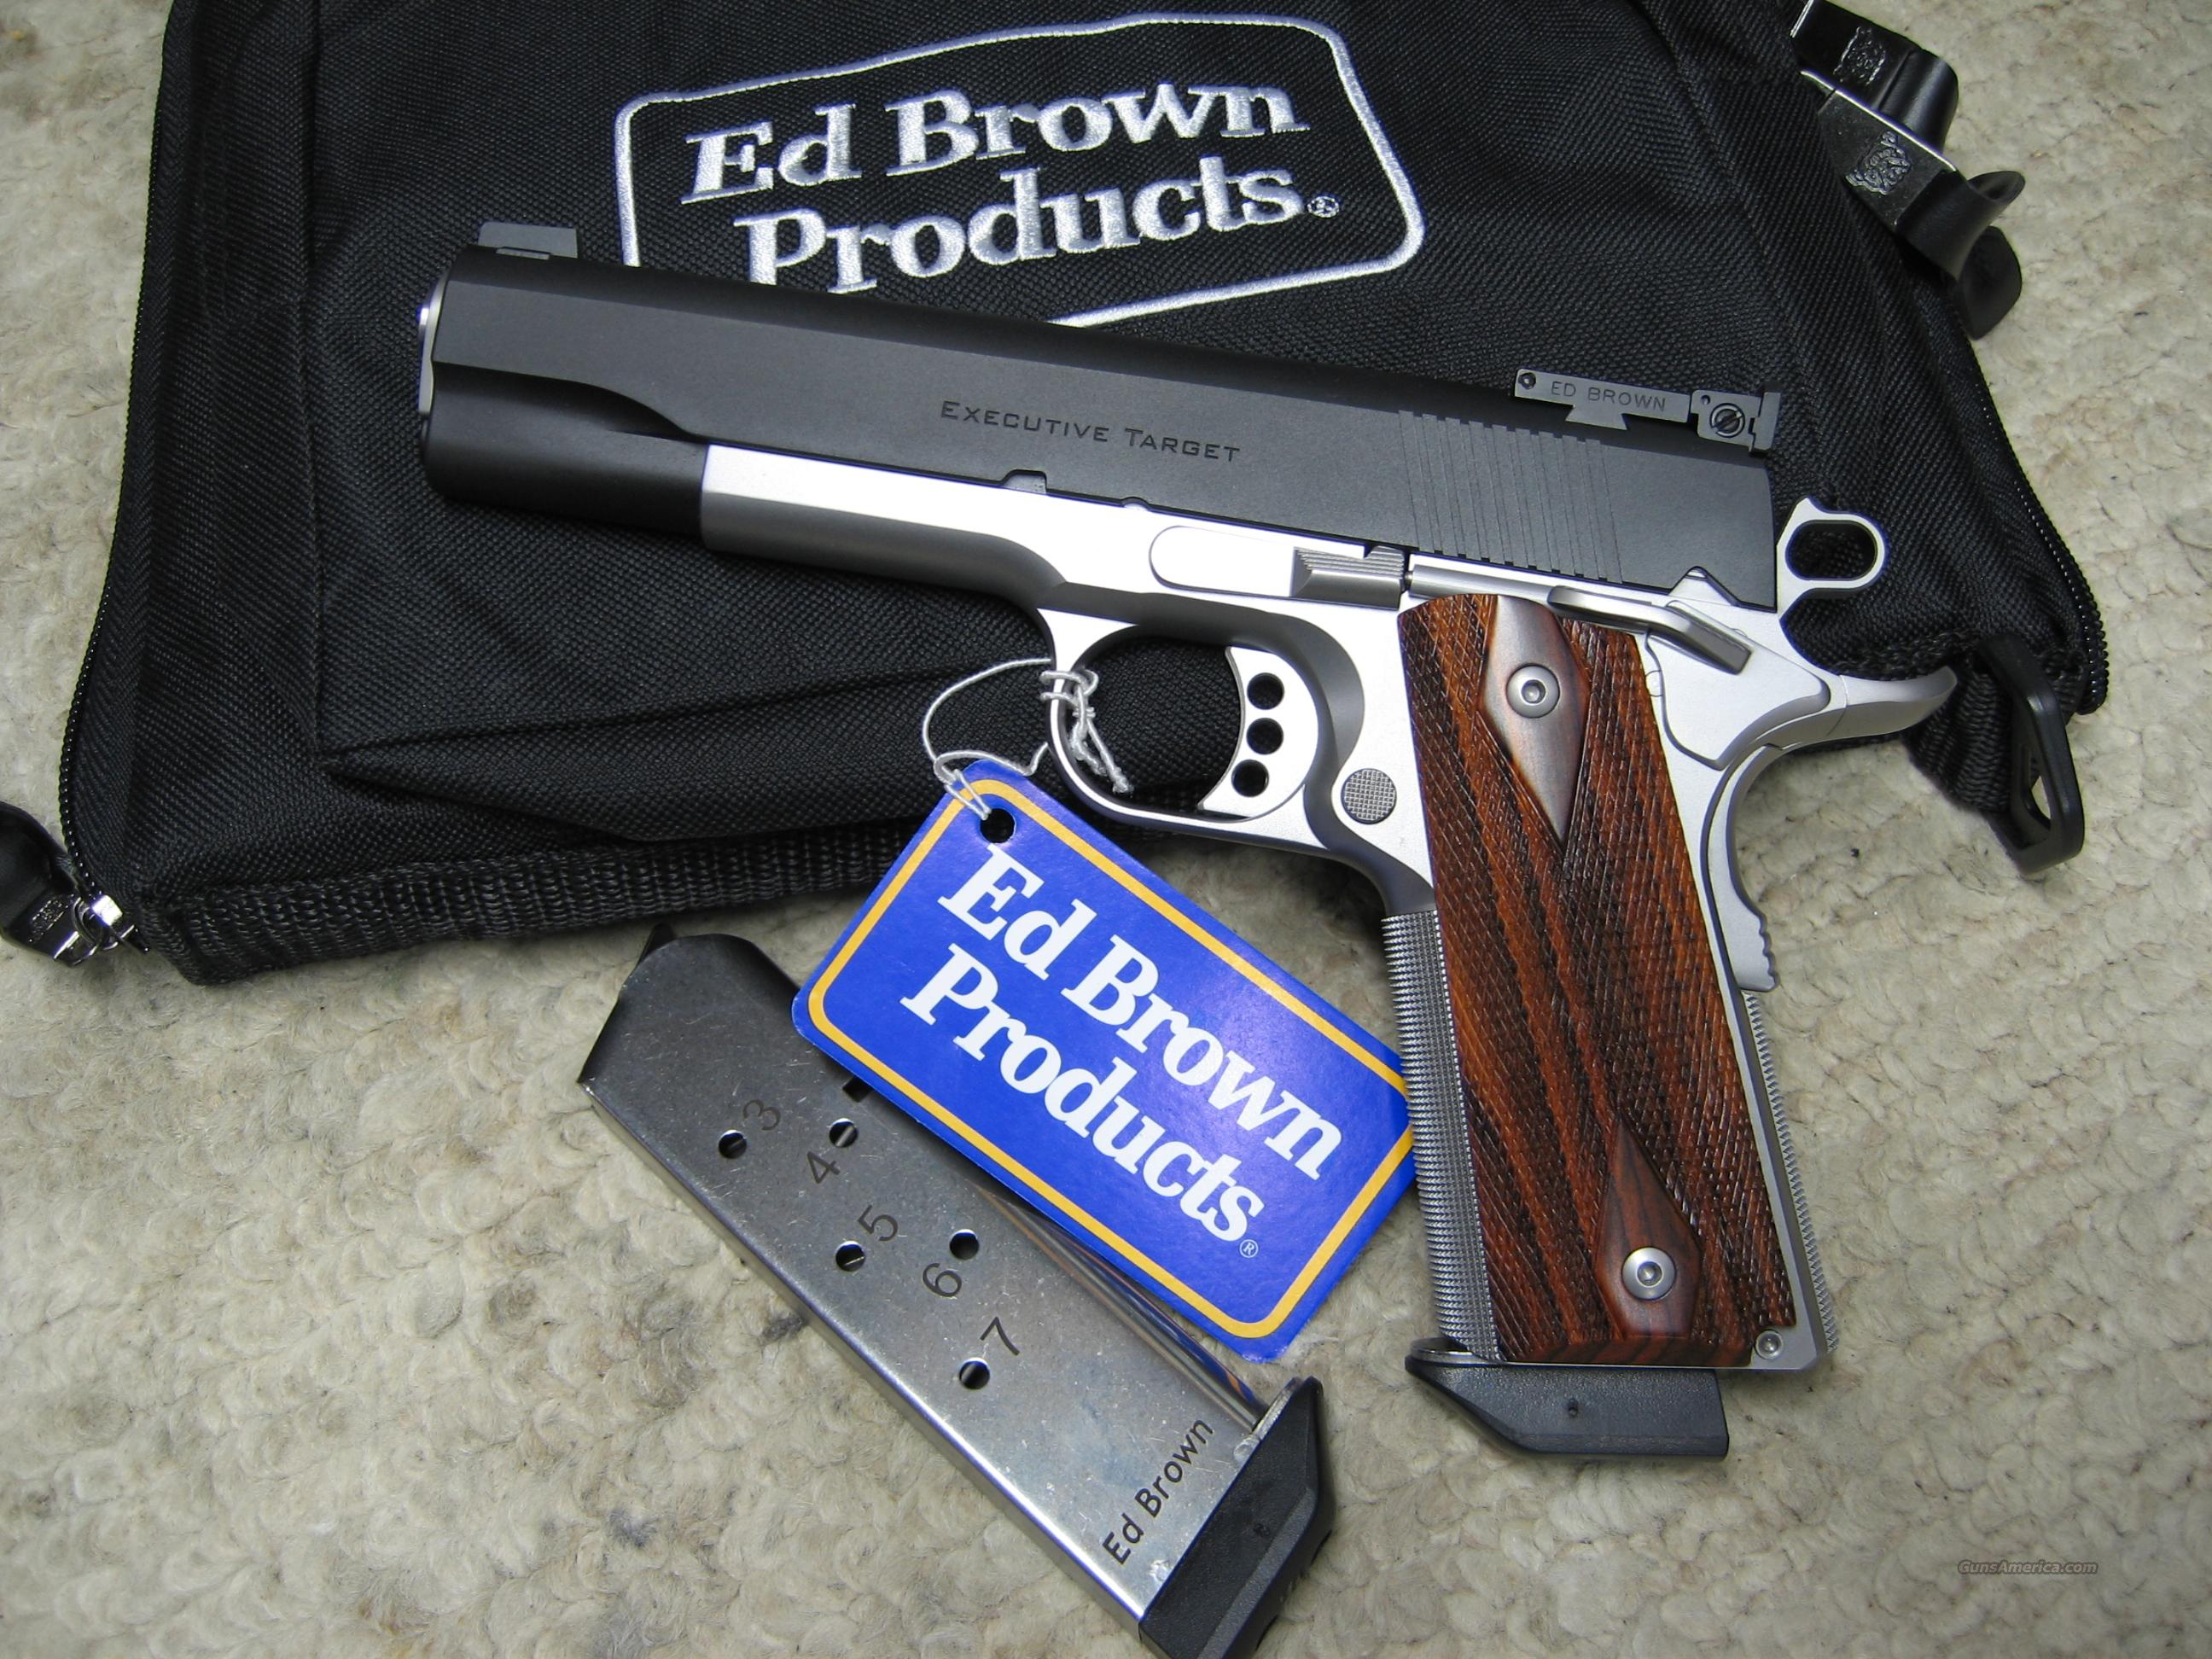 ED BROWN EXECUTIVE TARGET - OPTIONS - 3.5 LB TRIGGER - TWO TONE - EXTRA MAG  Guns > Pistols > Ed Brown Pistols